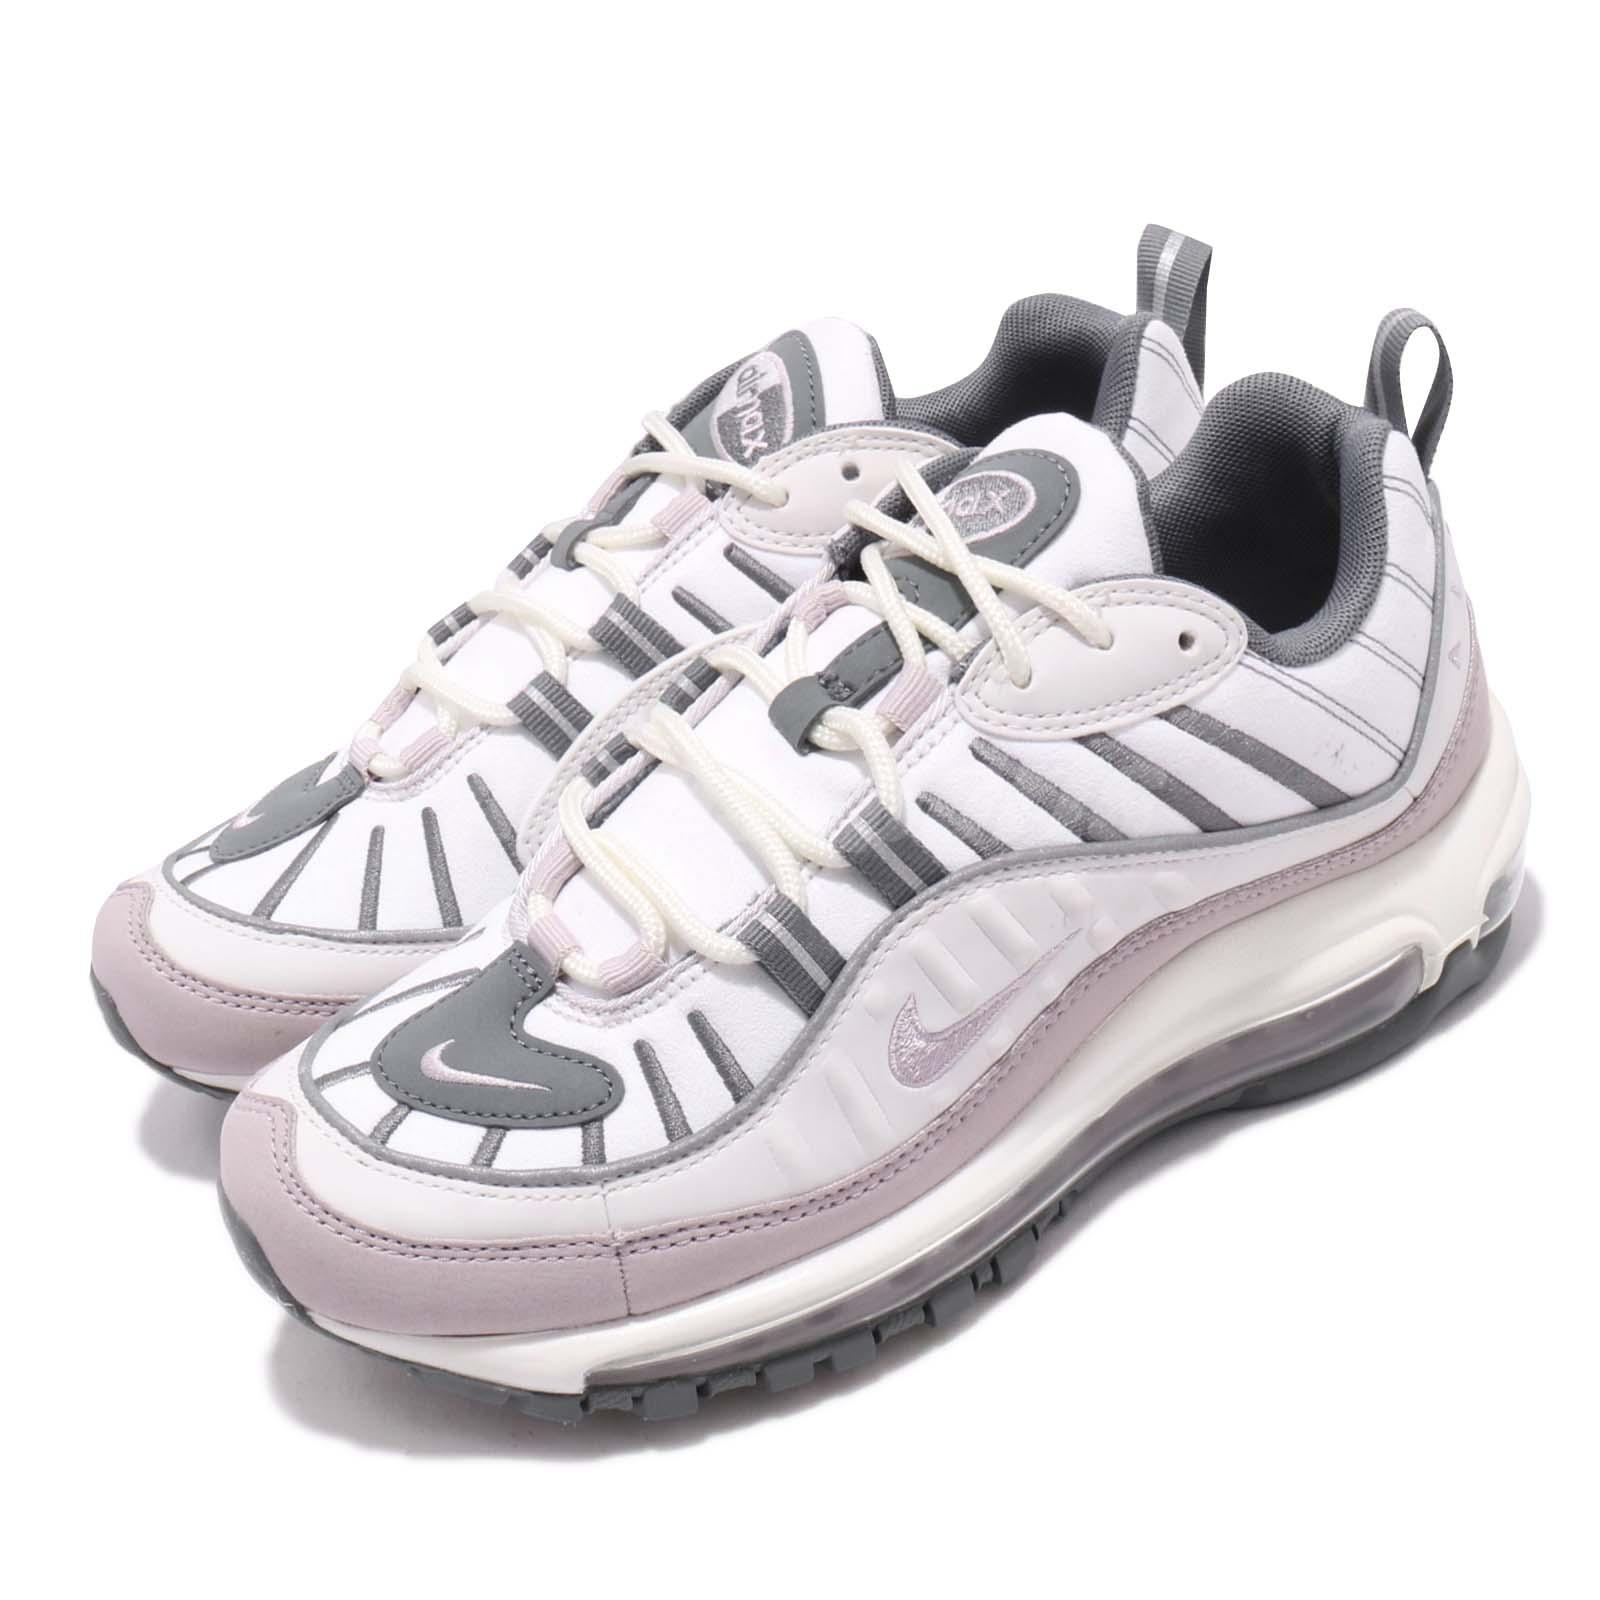 Details about Nike Wmns Air Max 98 White Violet Ash Grey Womens Running Shoes AH6799 111